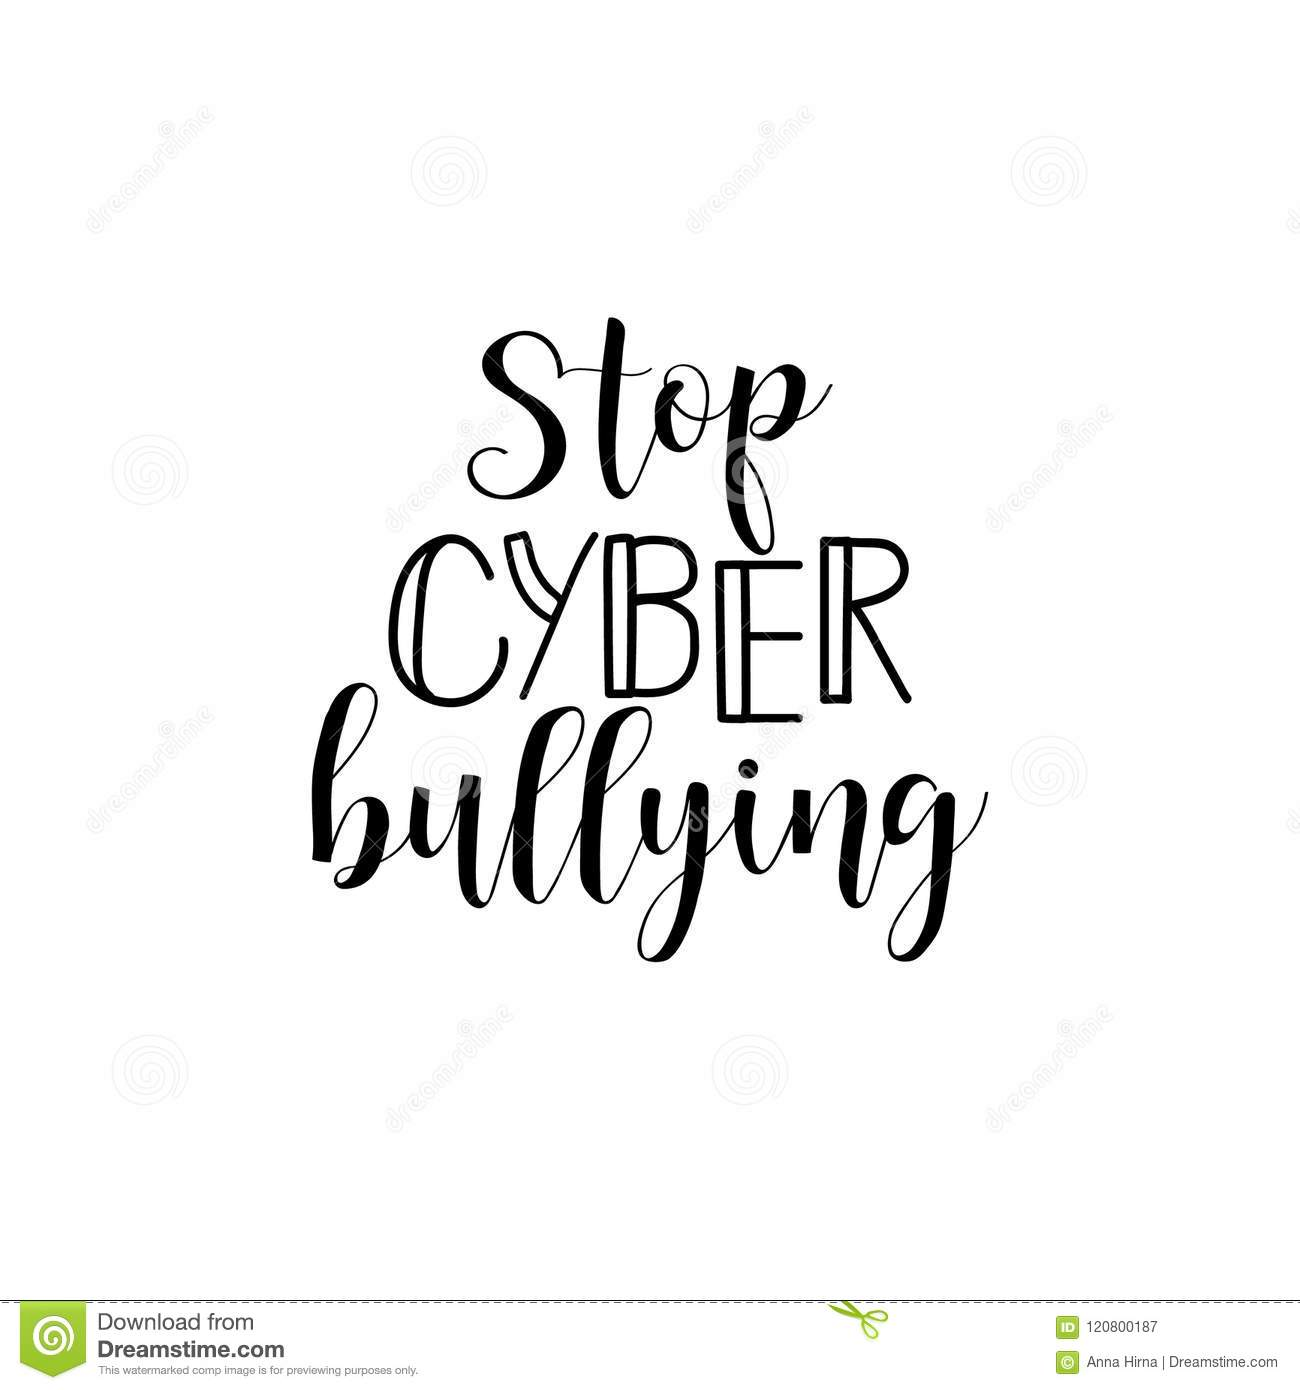 Stop cyber bullying. Lettering. calligraphy vector illustration.